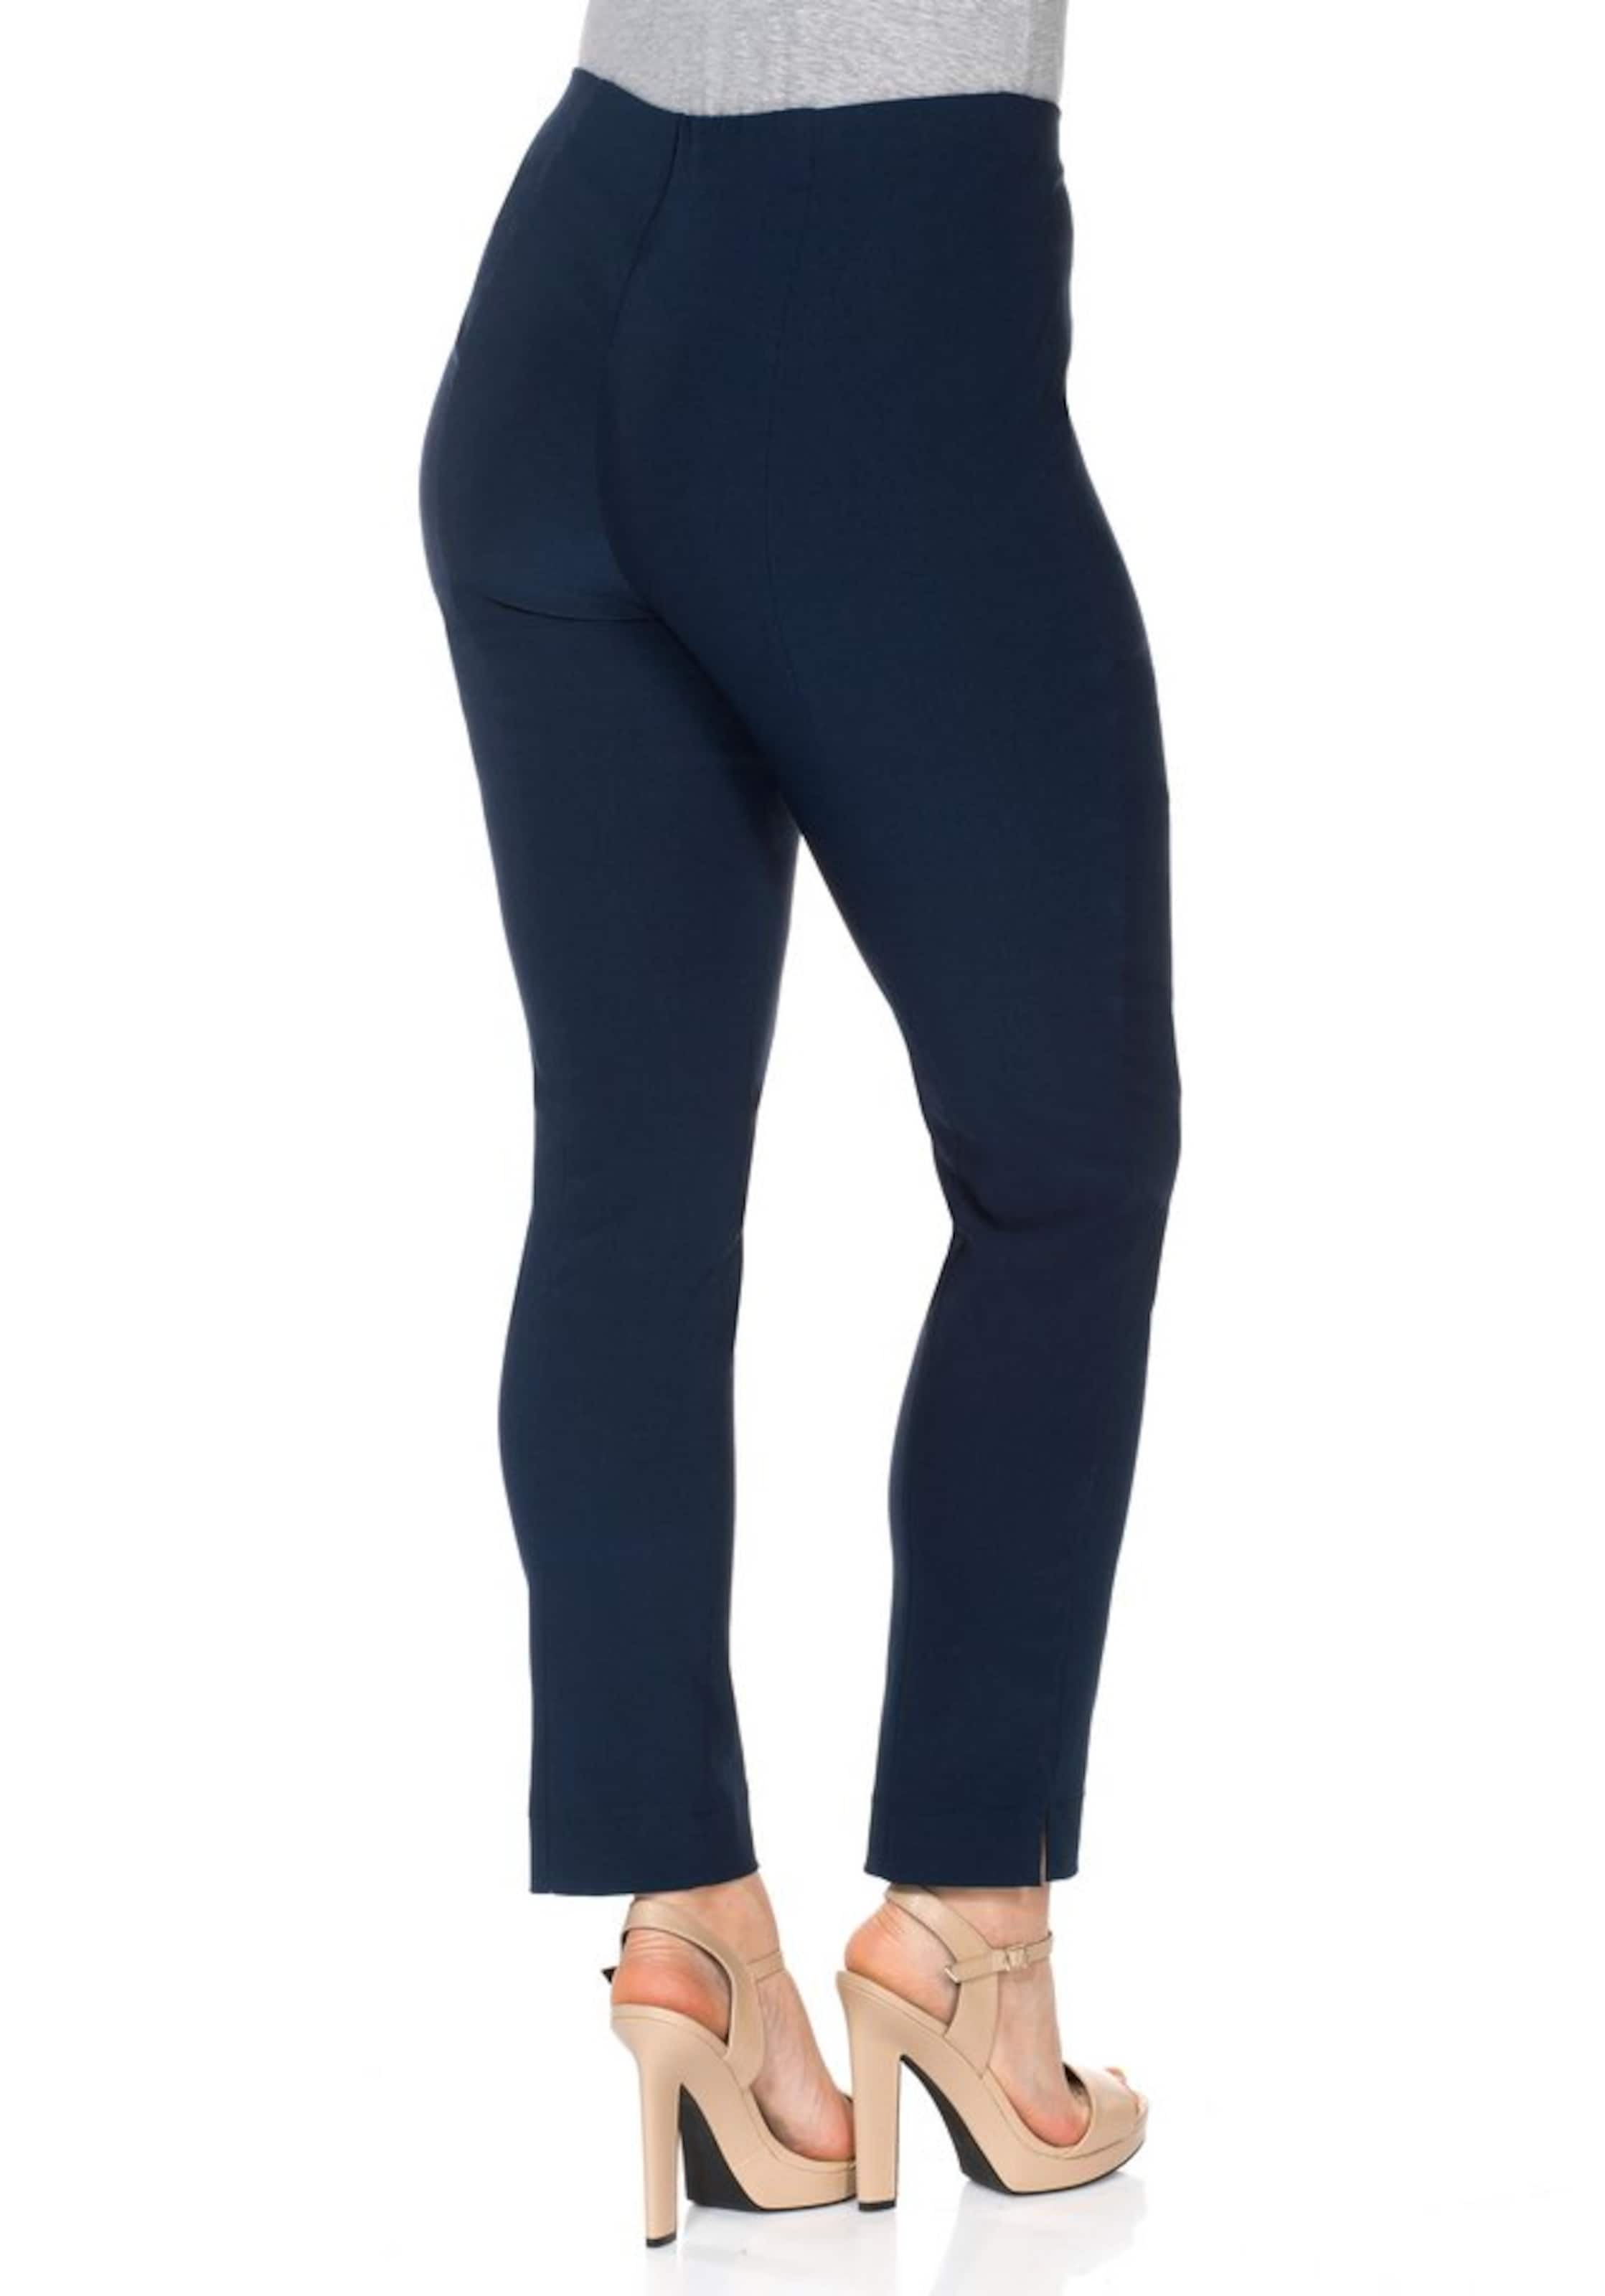 casual sheego am Stoffhose Schlitzen mit Schlitzen Saum casual Saum Stoffhose Stoffhose sheego am mit sheego casual vfTq4